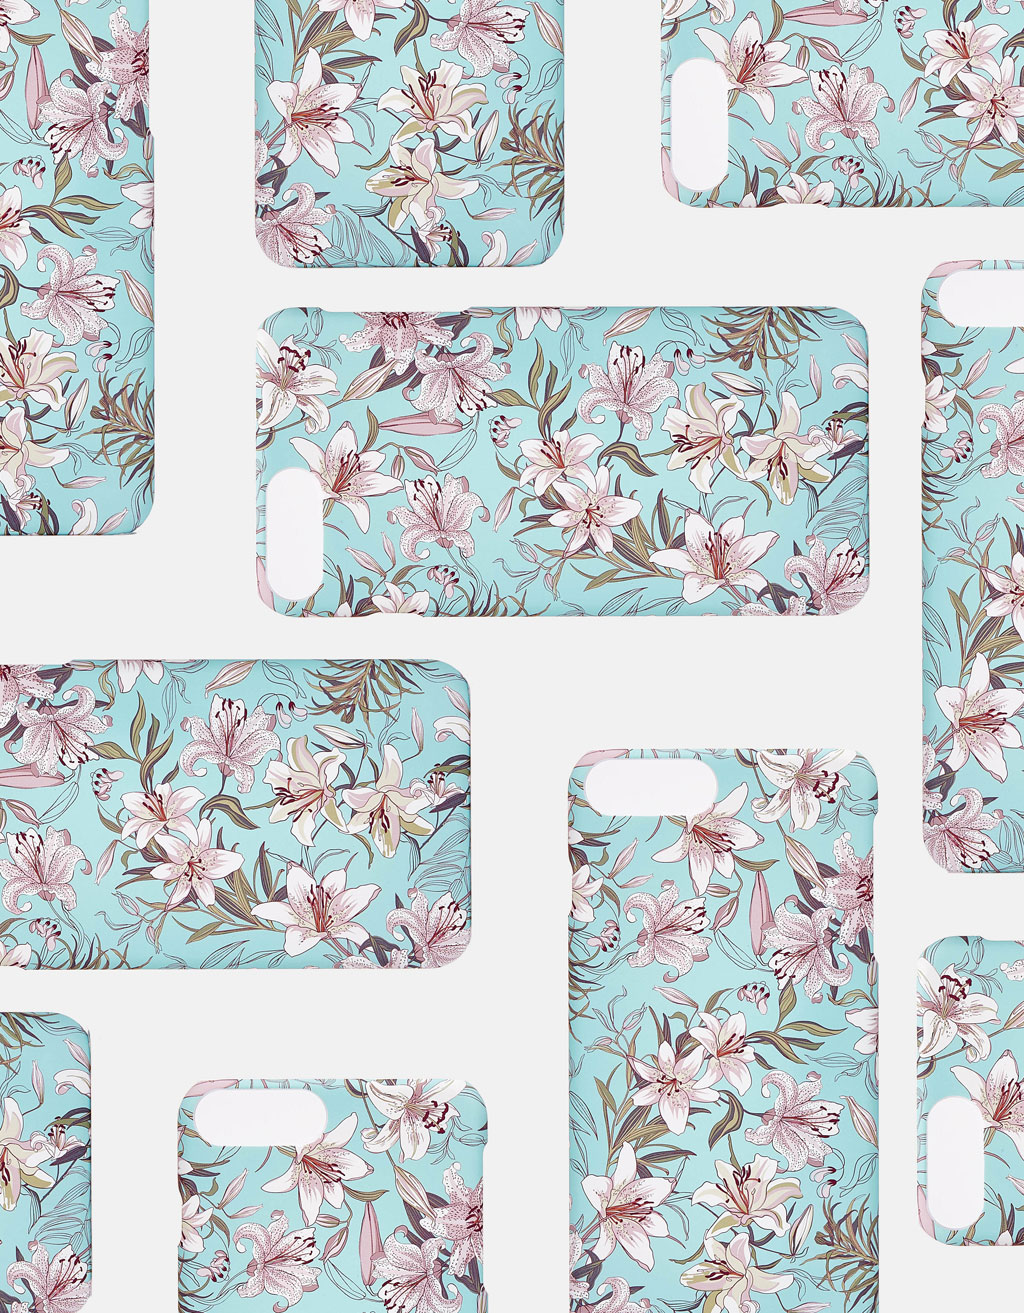 Floral iPhone 6/6s/7/8 case